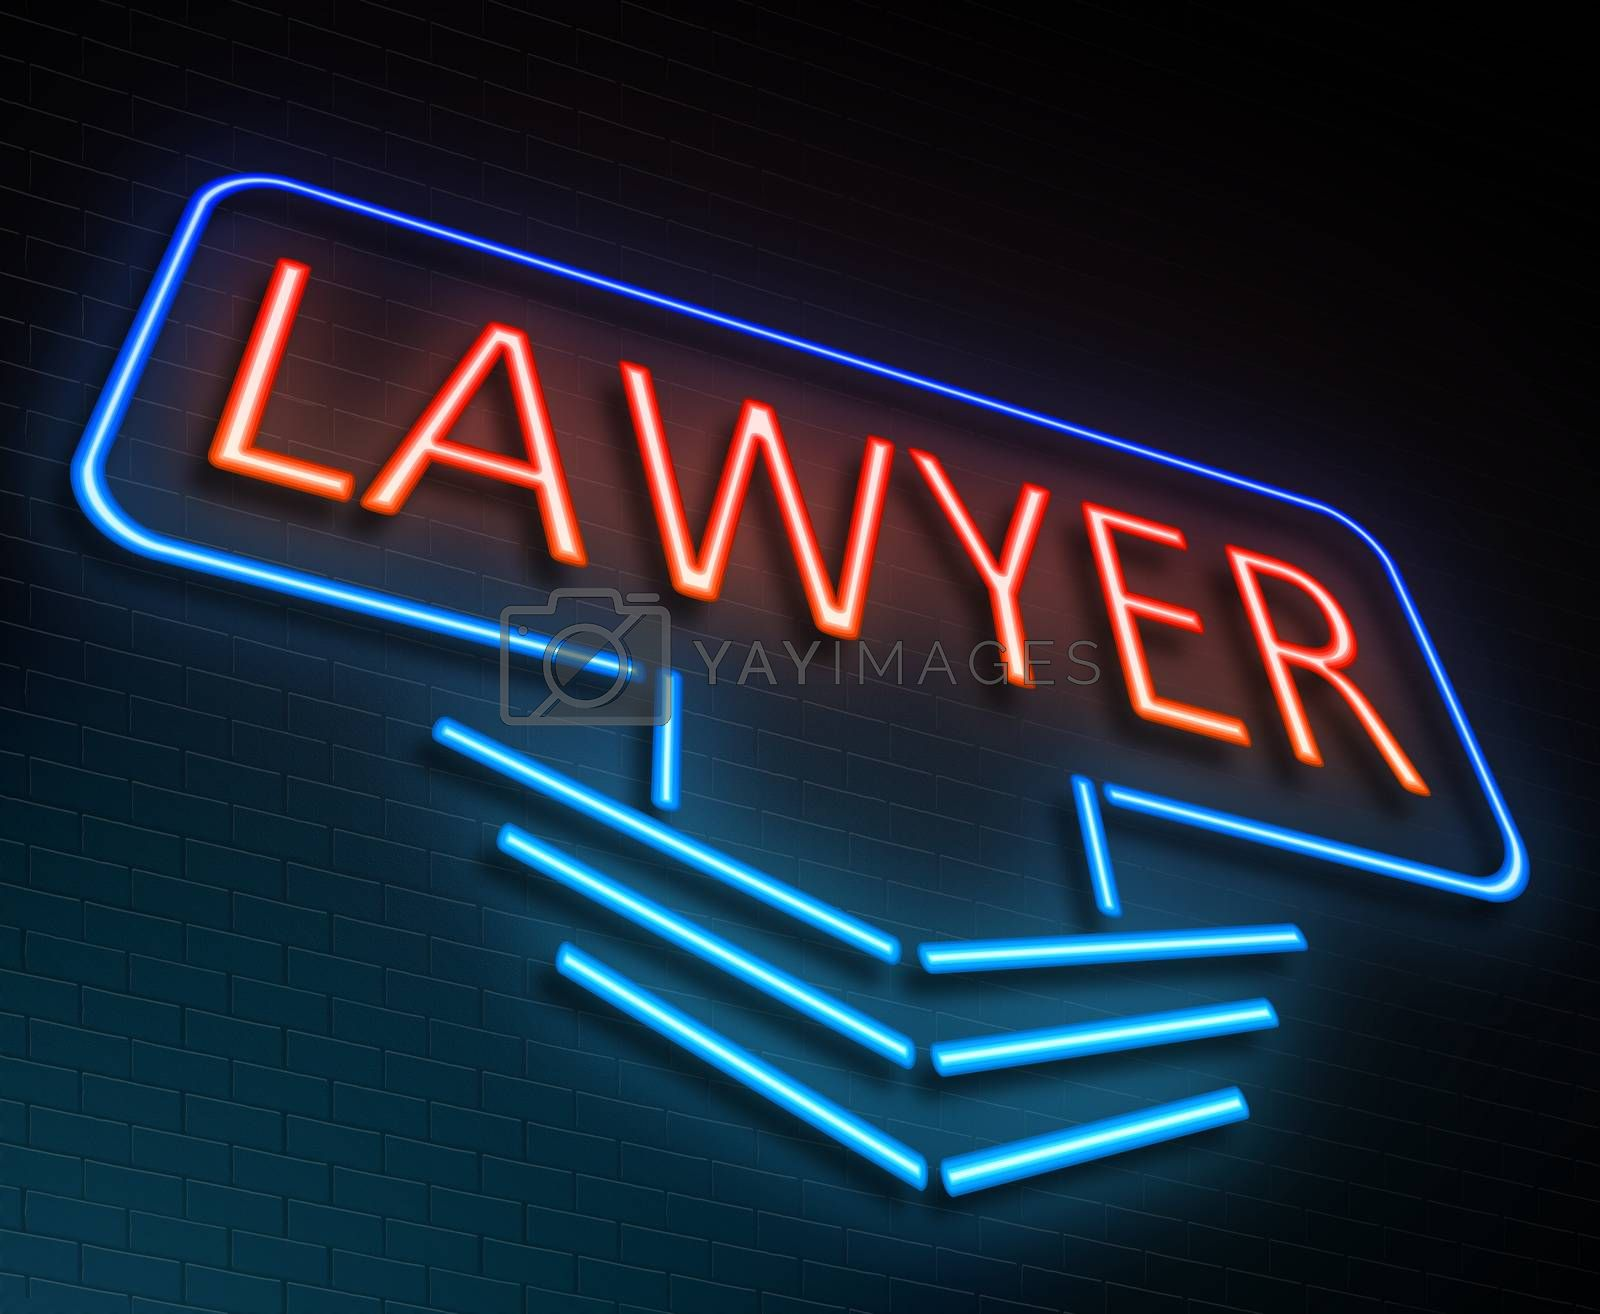 Illustration depicting an illuminated neon sign with a lawyer concept.